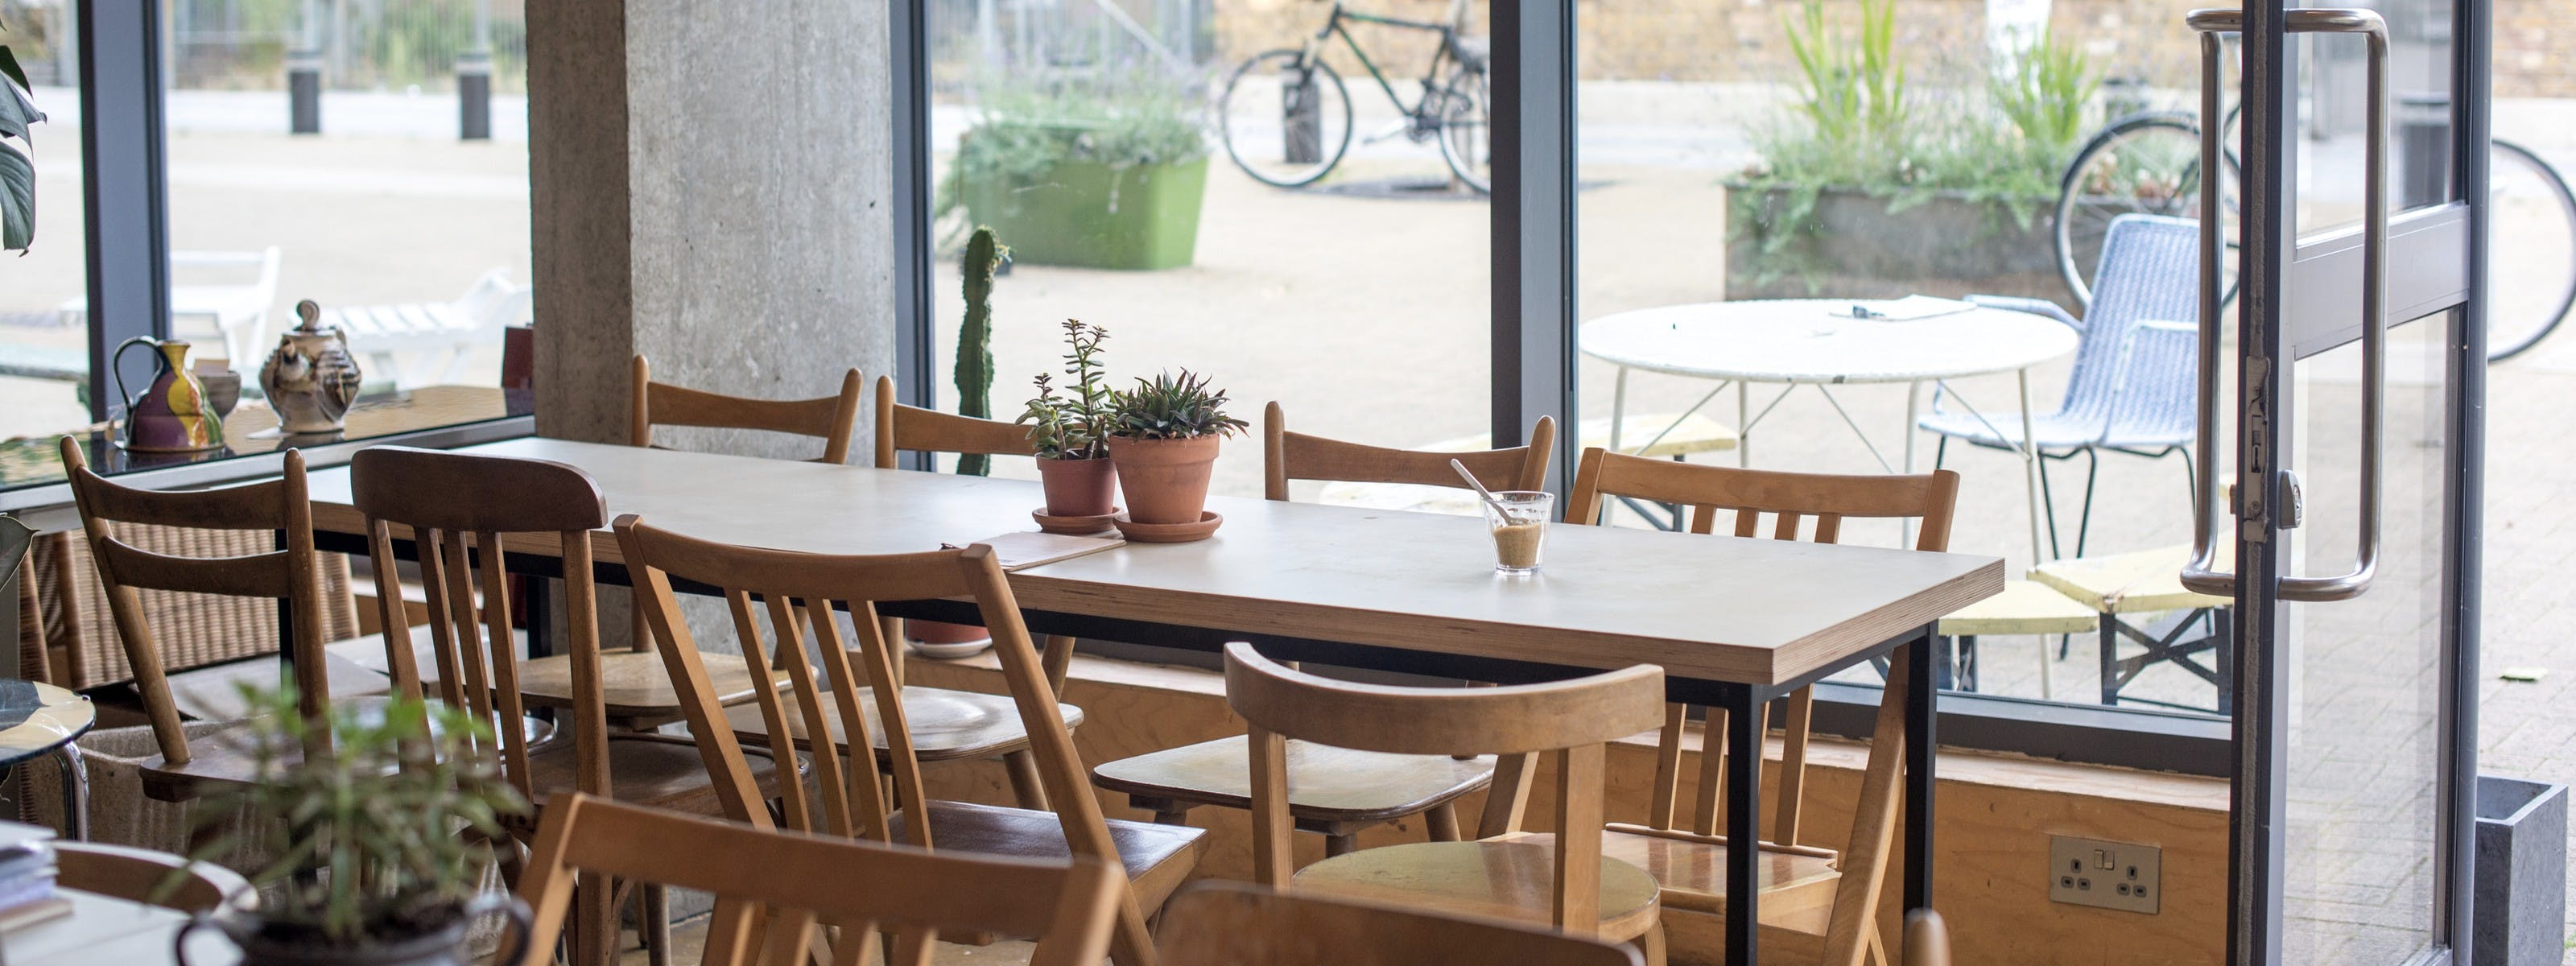 The Best London Coffee Shops For Getting Work Done London The Infatuation